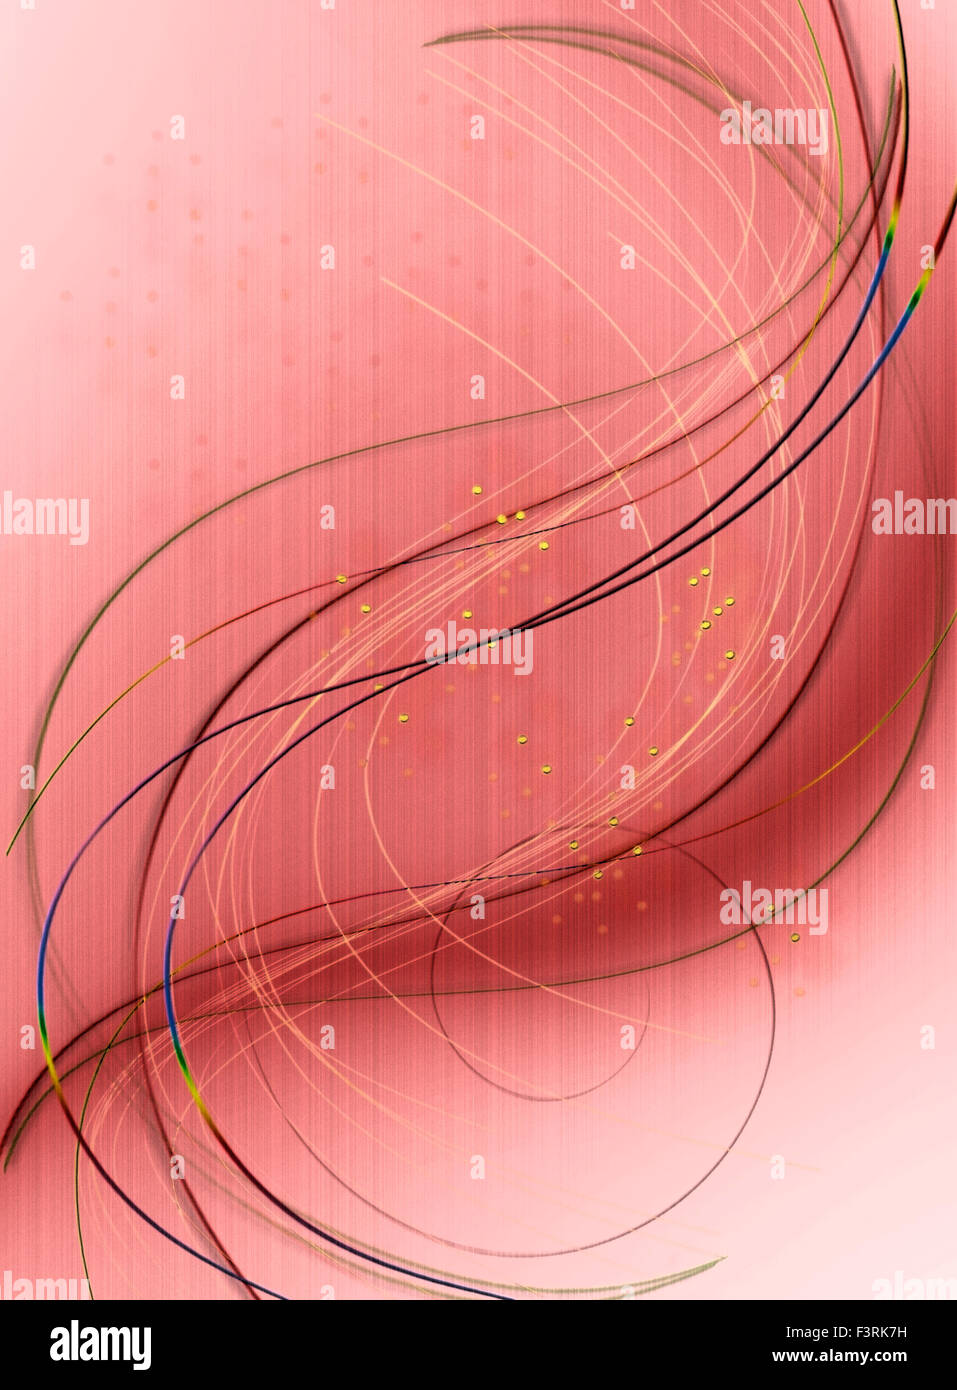 Reddish brown background with curves, spirals and golden balls - Stock Image